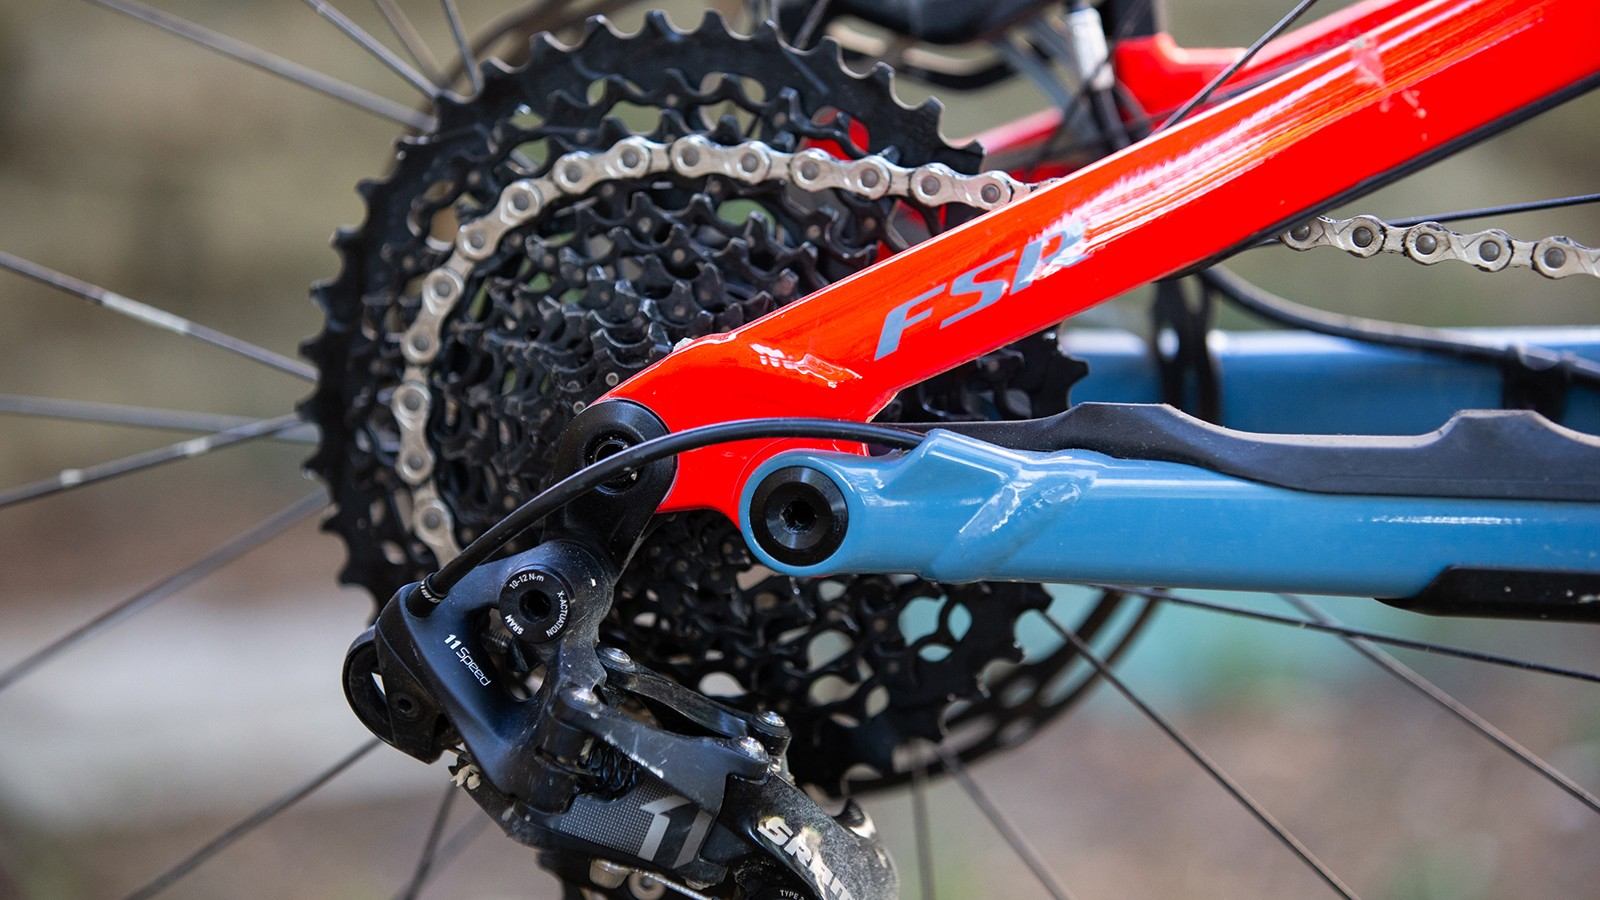 Specialized is still running SRAM 11-speed gearing for its weight benefit over SRAM Eagle. The 10-42t cassette provides enough range with the assistance provided by the new Specialized 2.1 motor